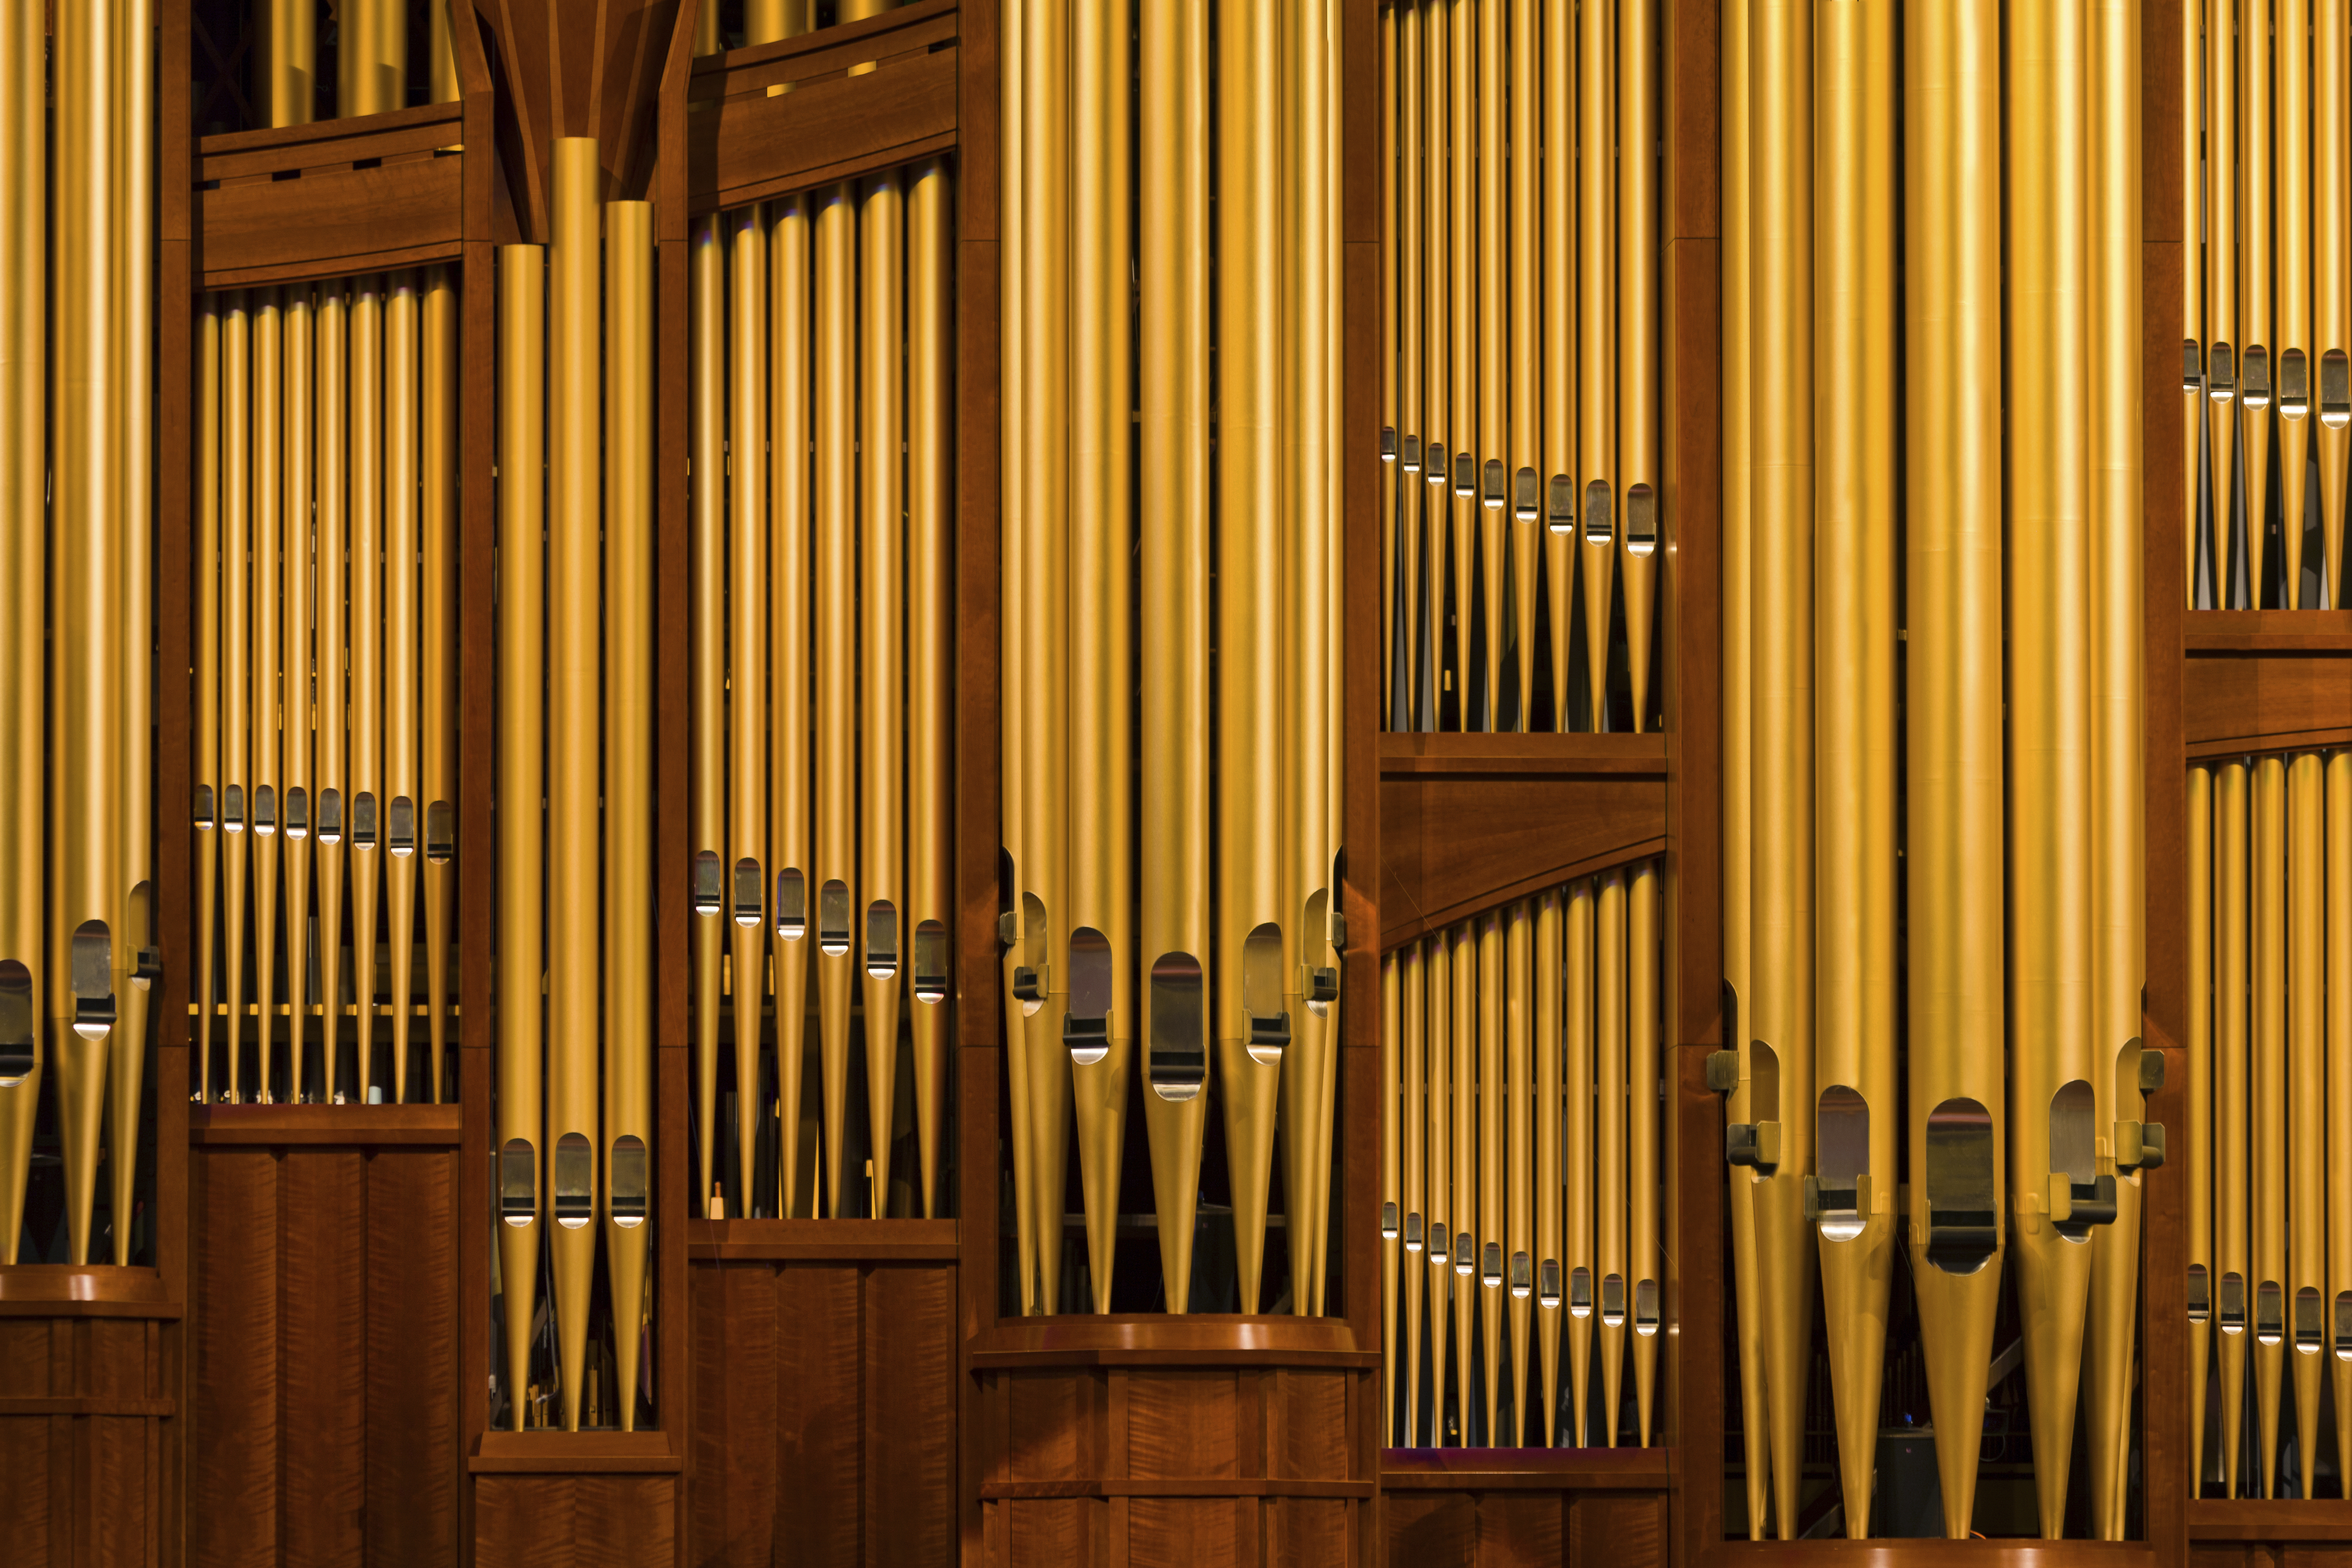 Tall organ pipes inside the Conference Center.